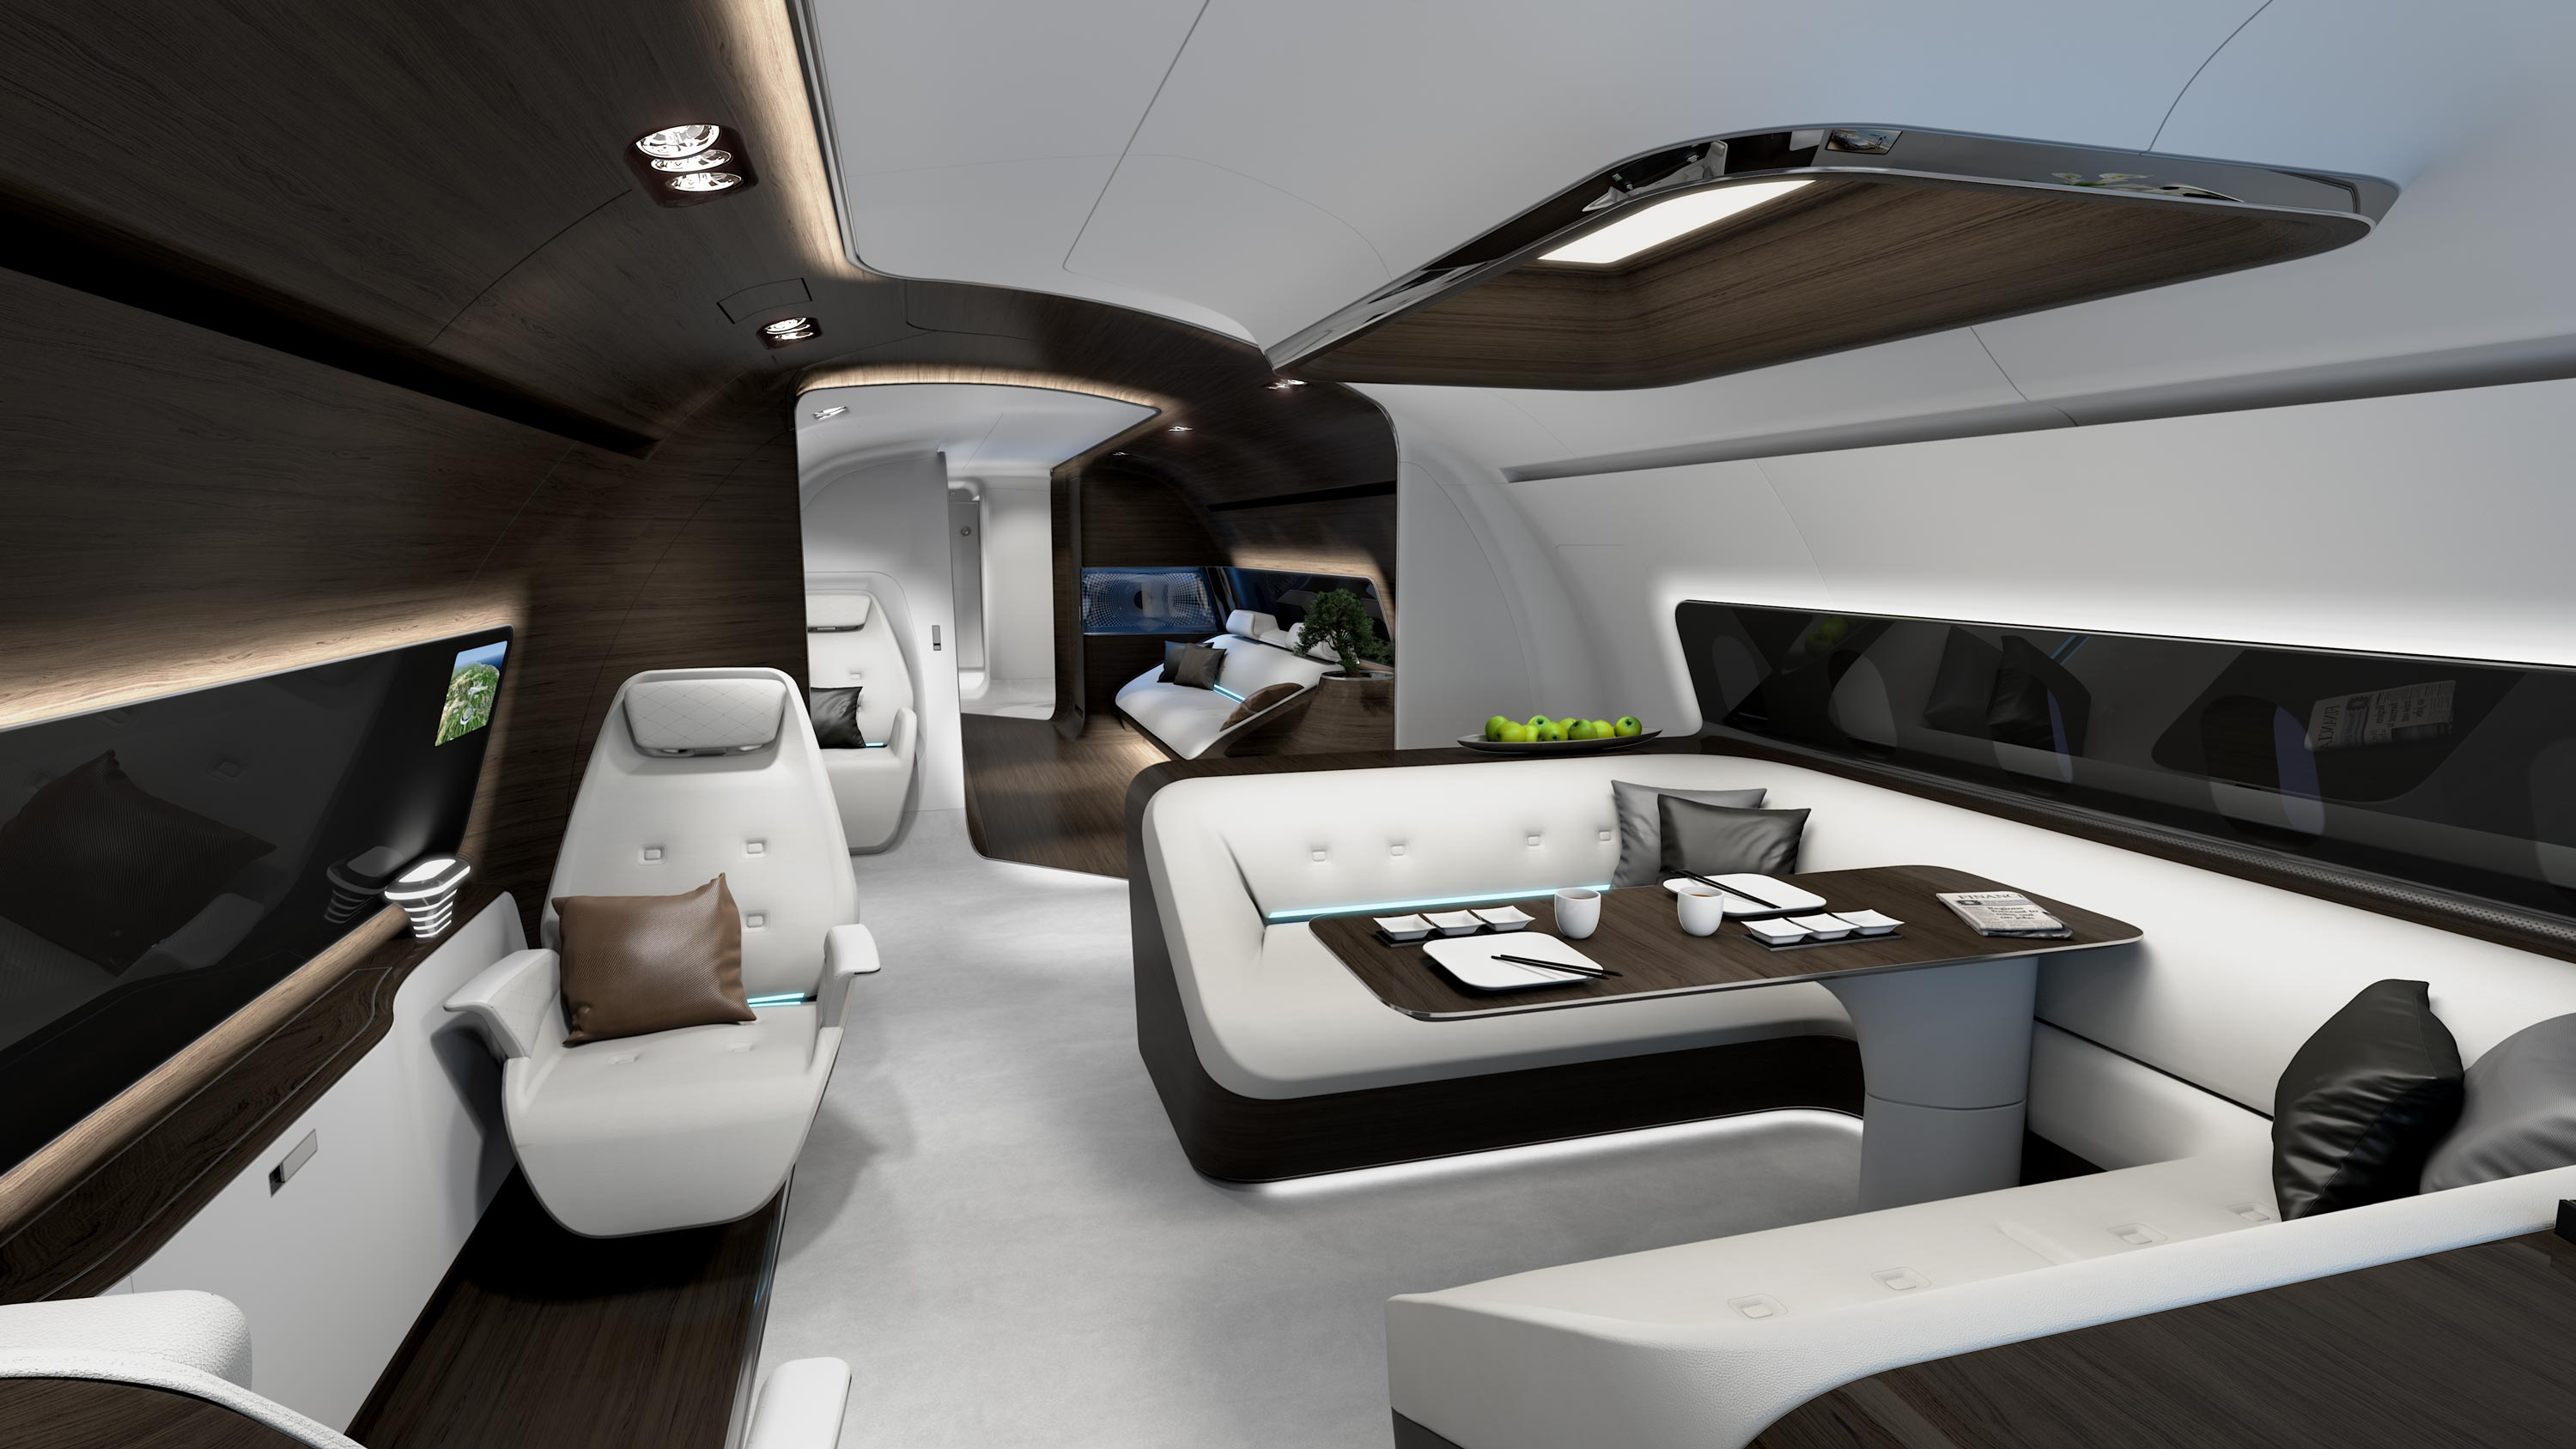 BACK TO Mercedes Goes In The Air For The Modern Jet Setters · « · » · « · »